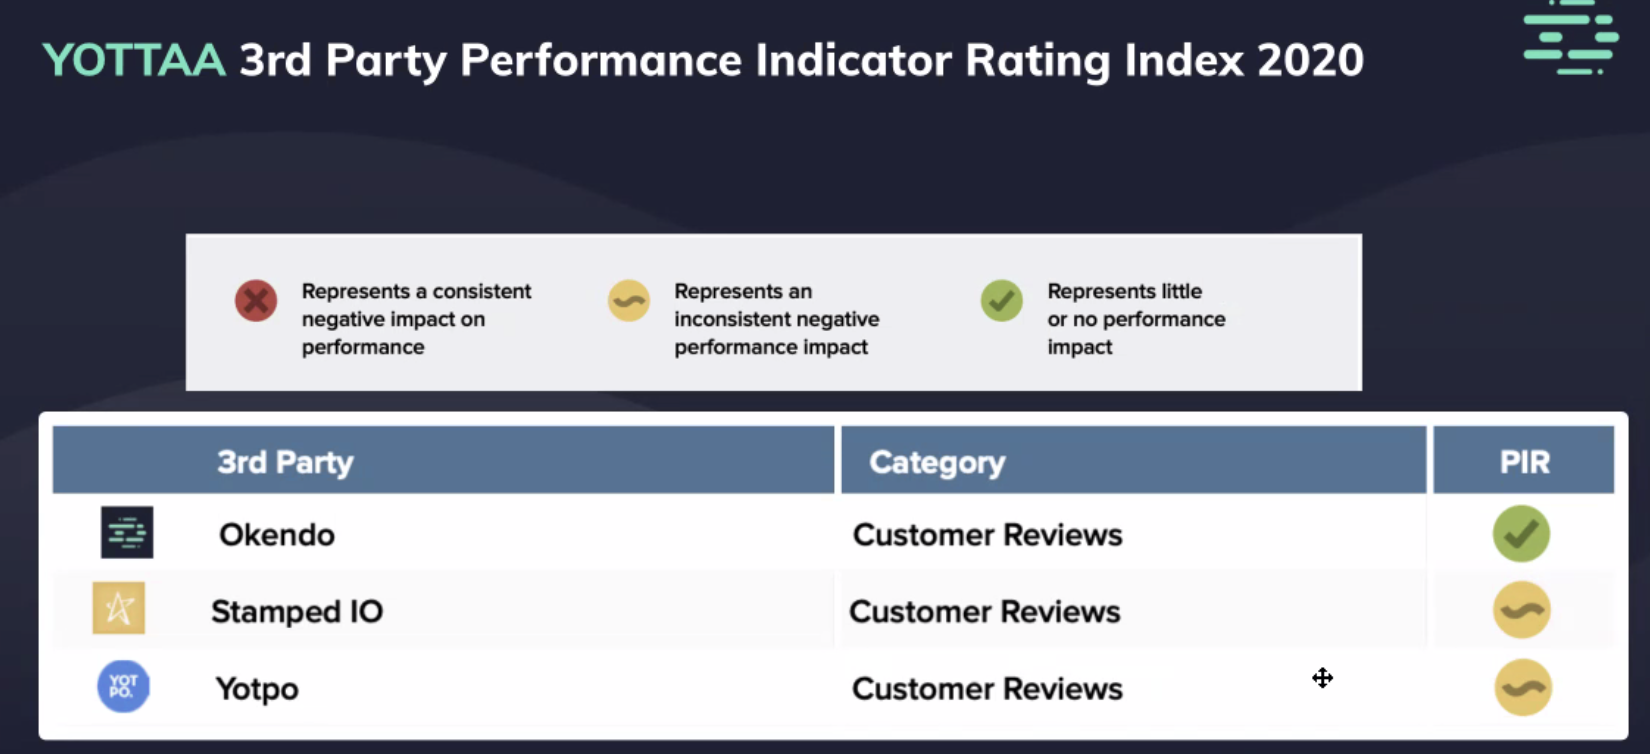 Okendo 3rd Rating Performance Indicator Rating Index